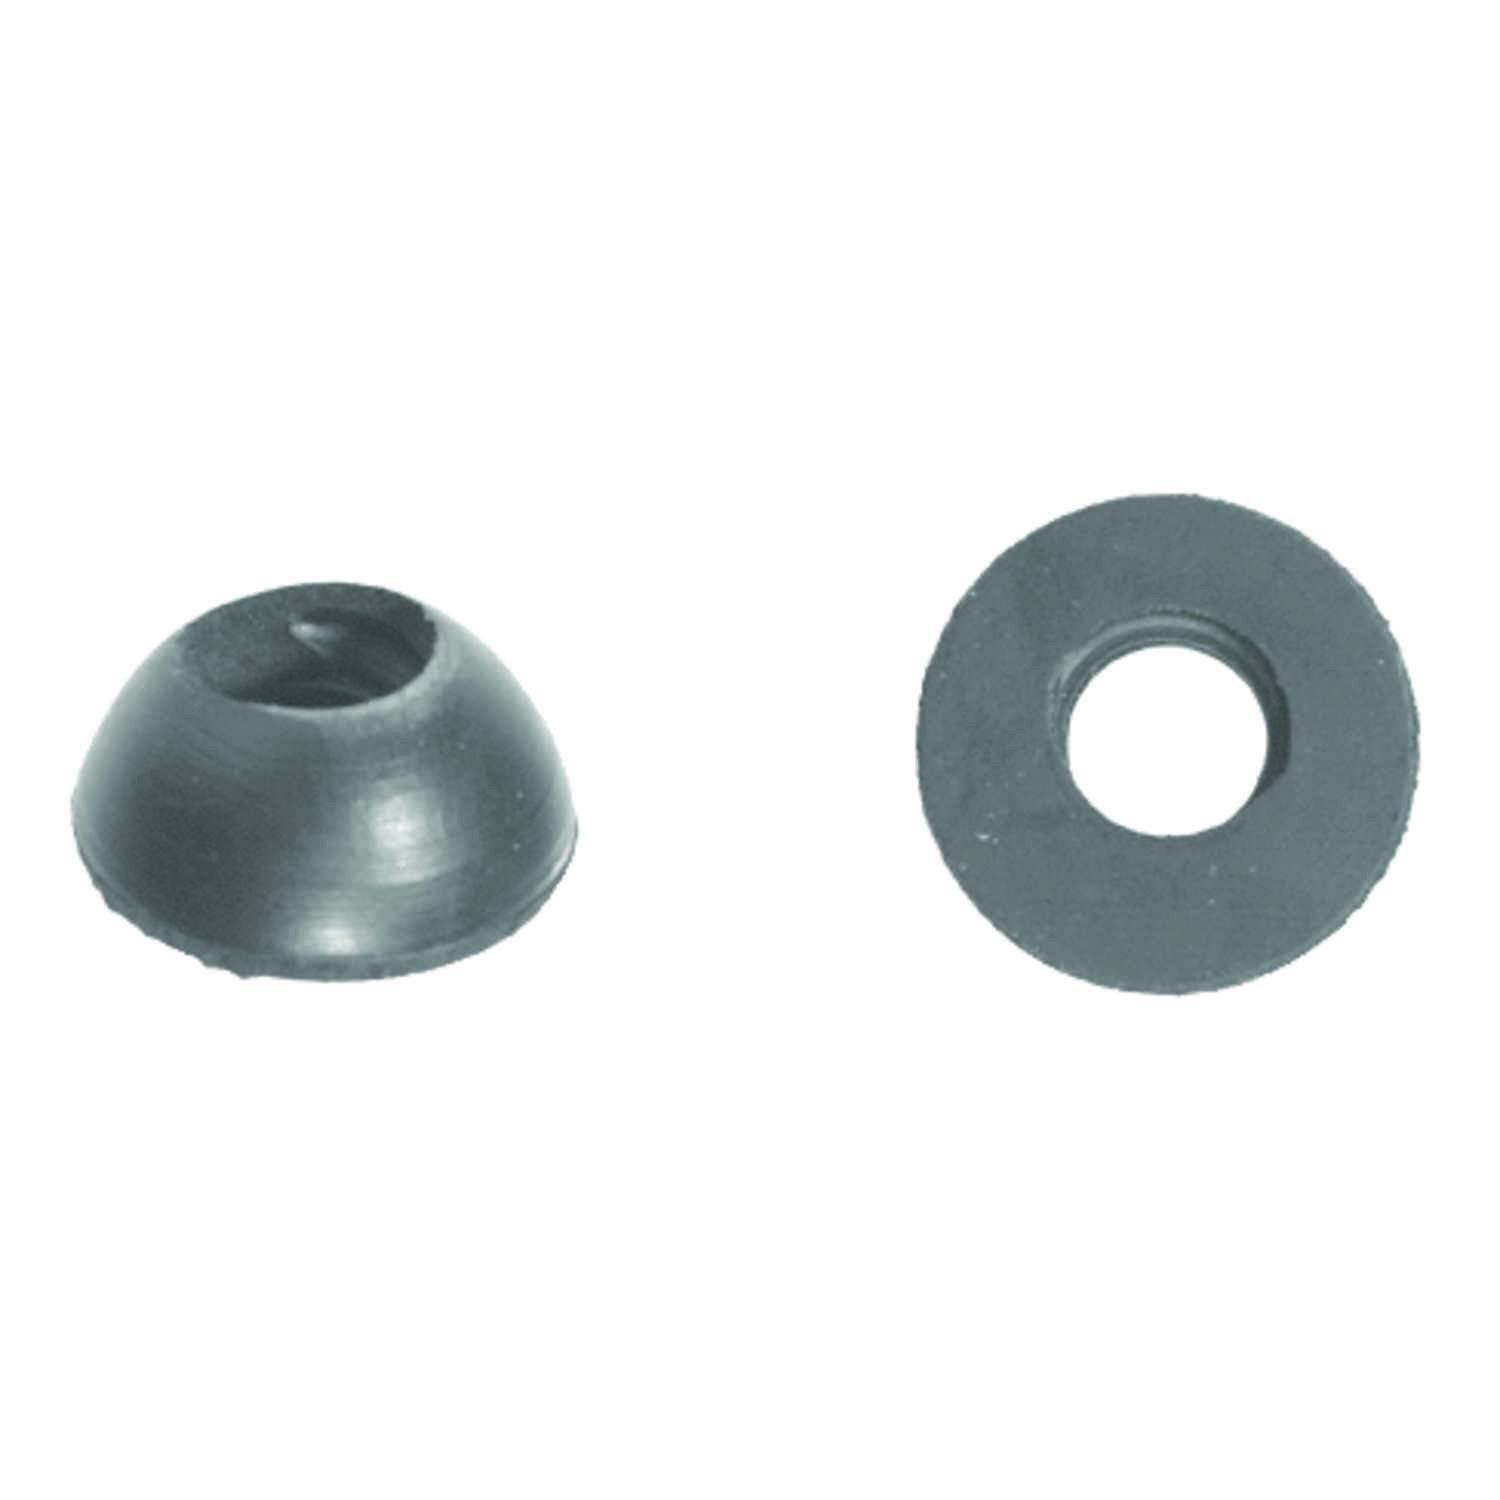 Danco  3/8 in. Dia. Rubber  Washer  5 pk